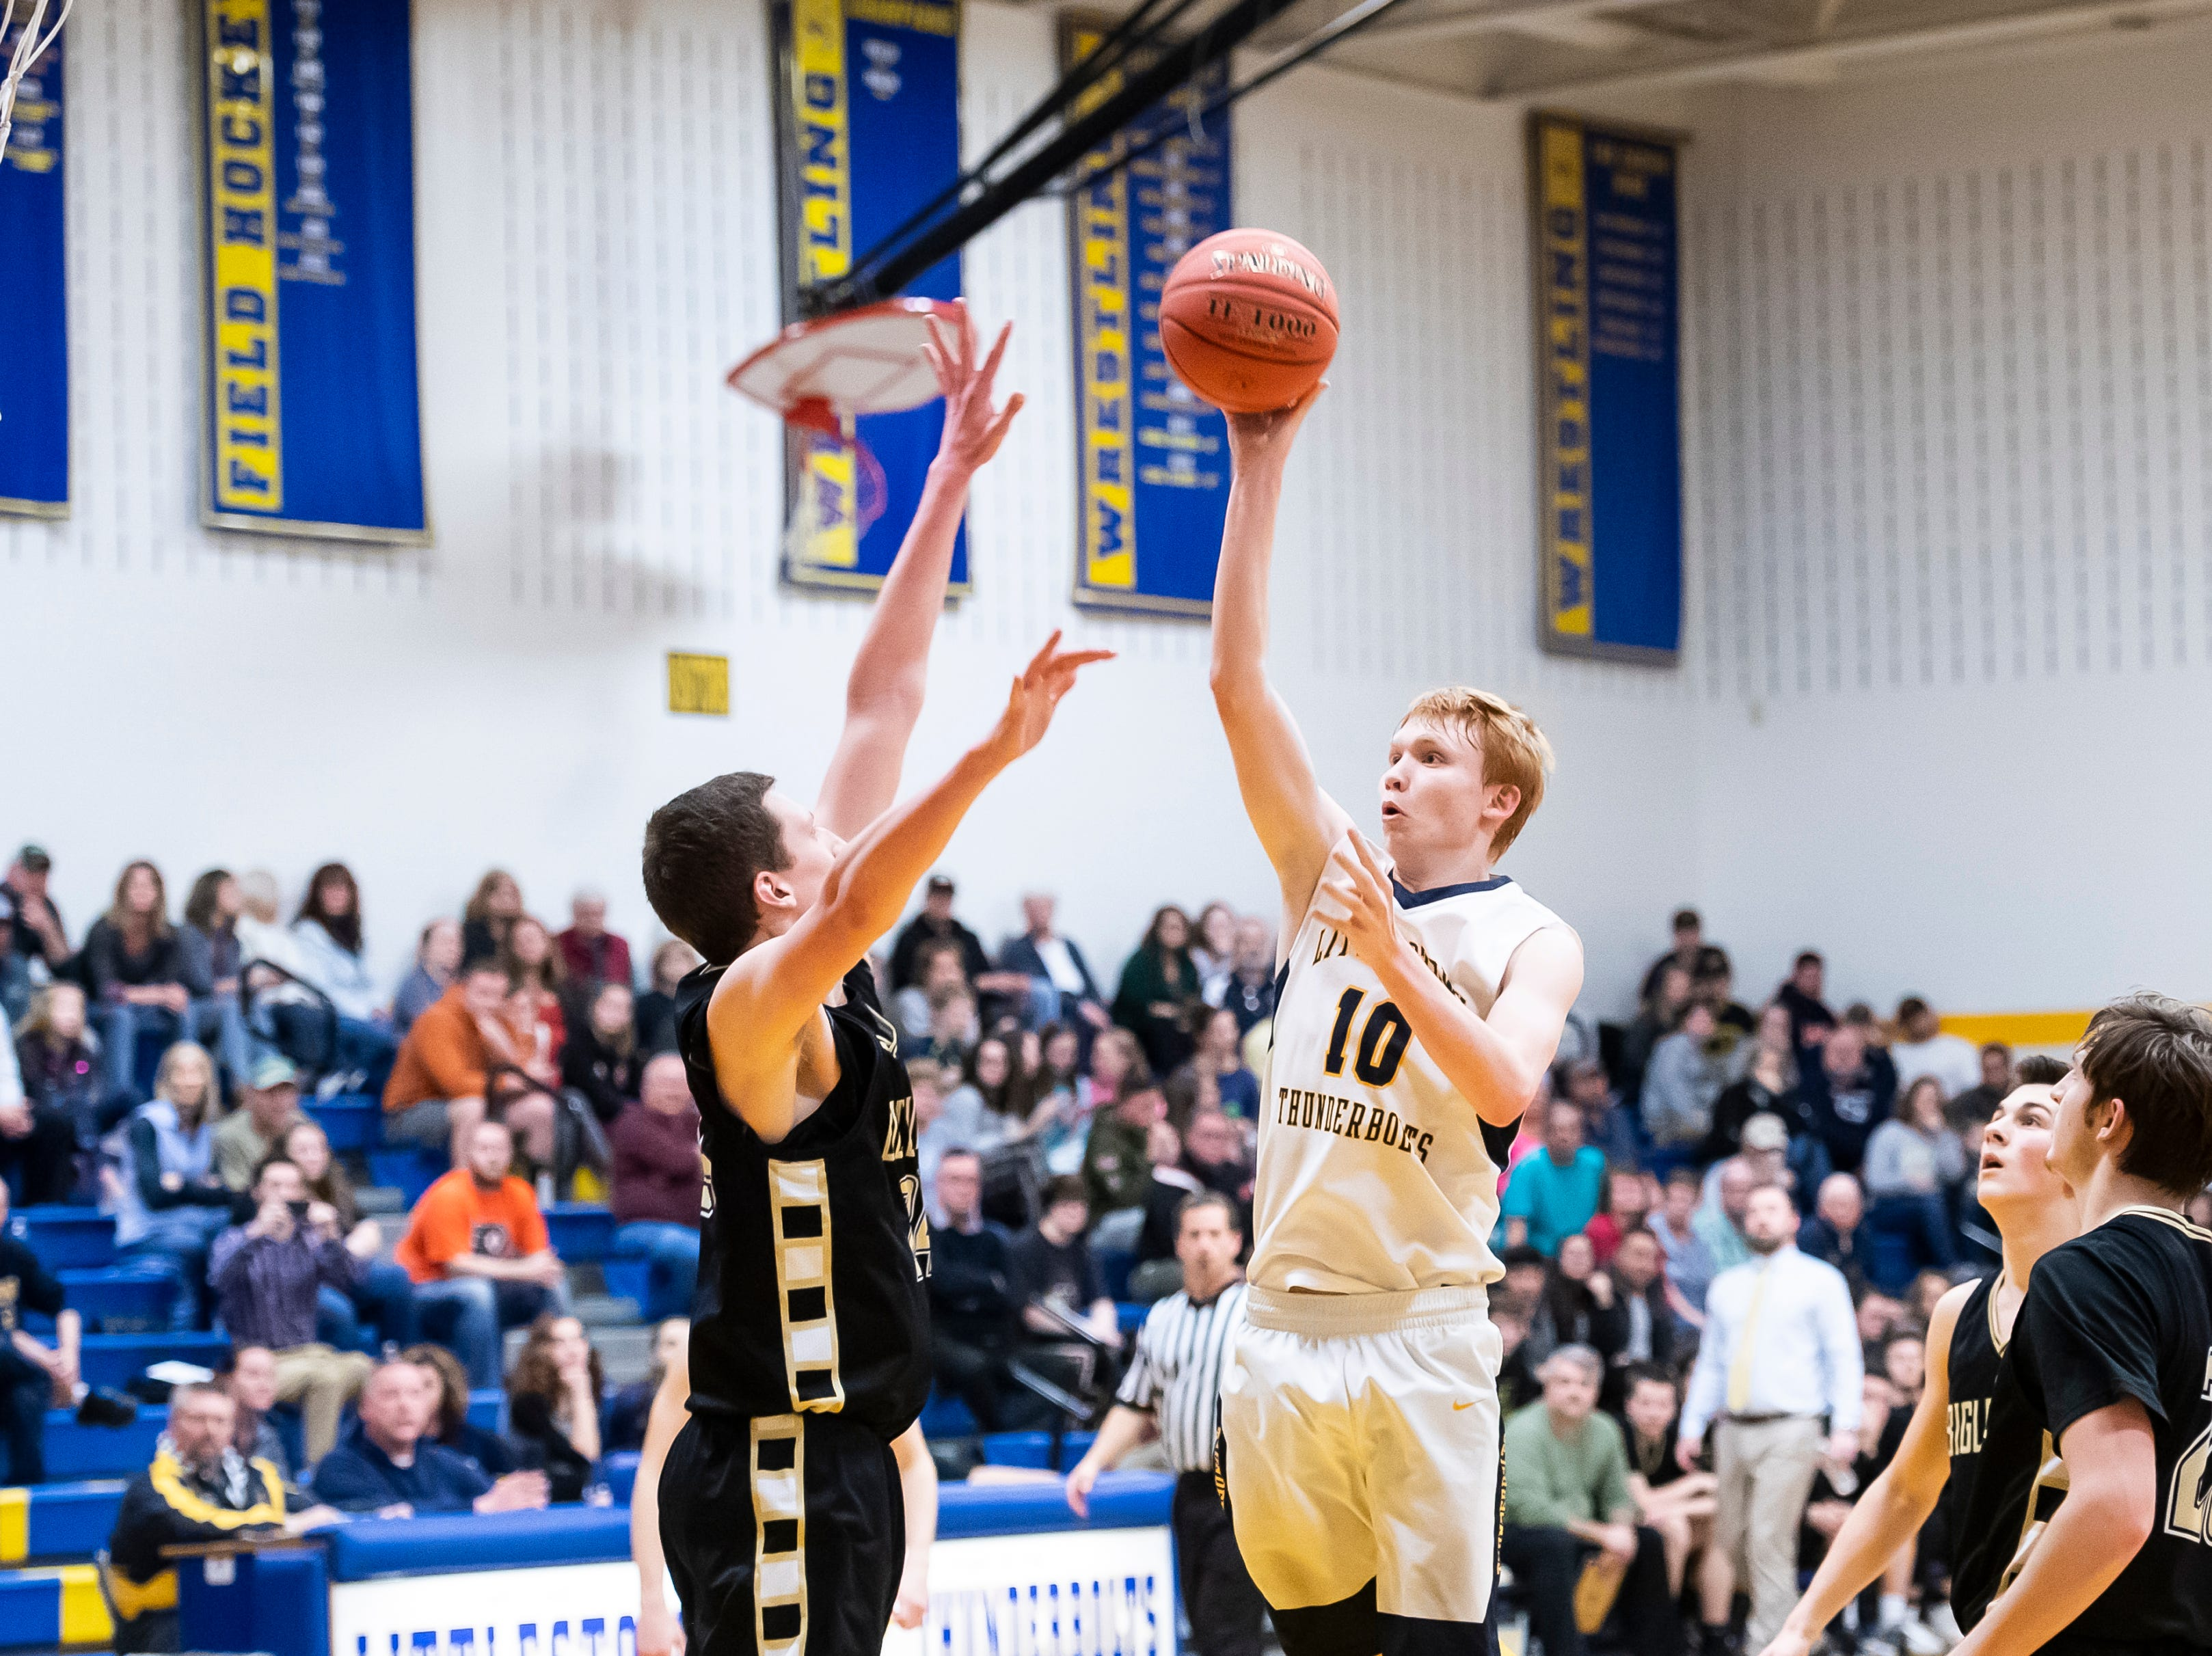 Littlestown's Daniel Gazmen takes a jump shot during play against Biglerville Tuesday, February 5, 2019. The Bolts won 54-46 on senior night.